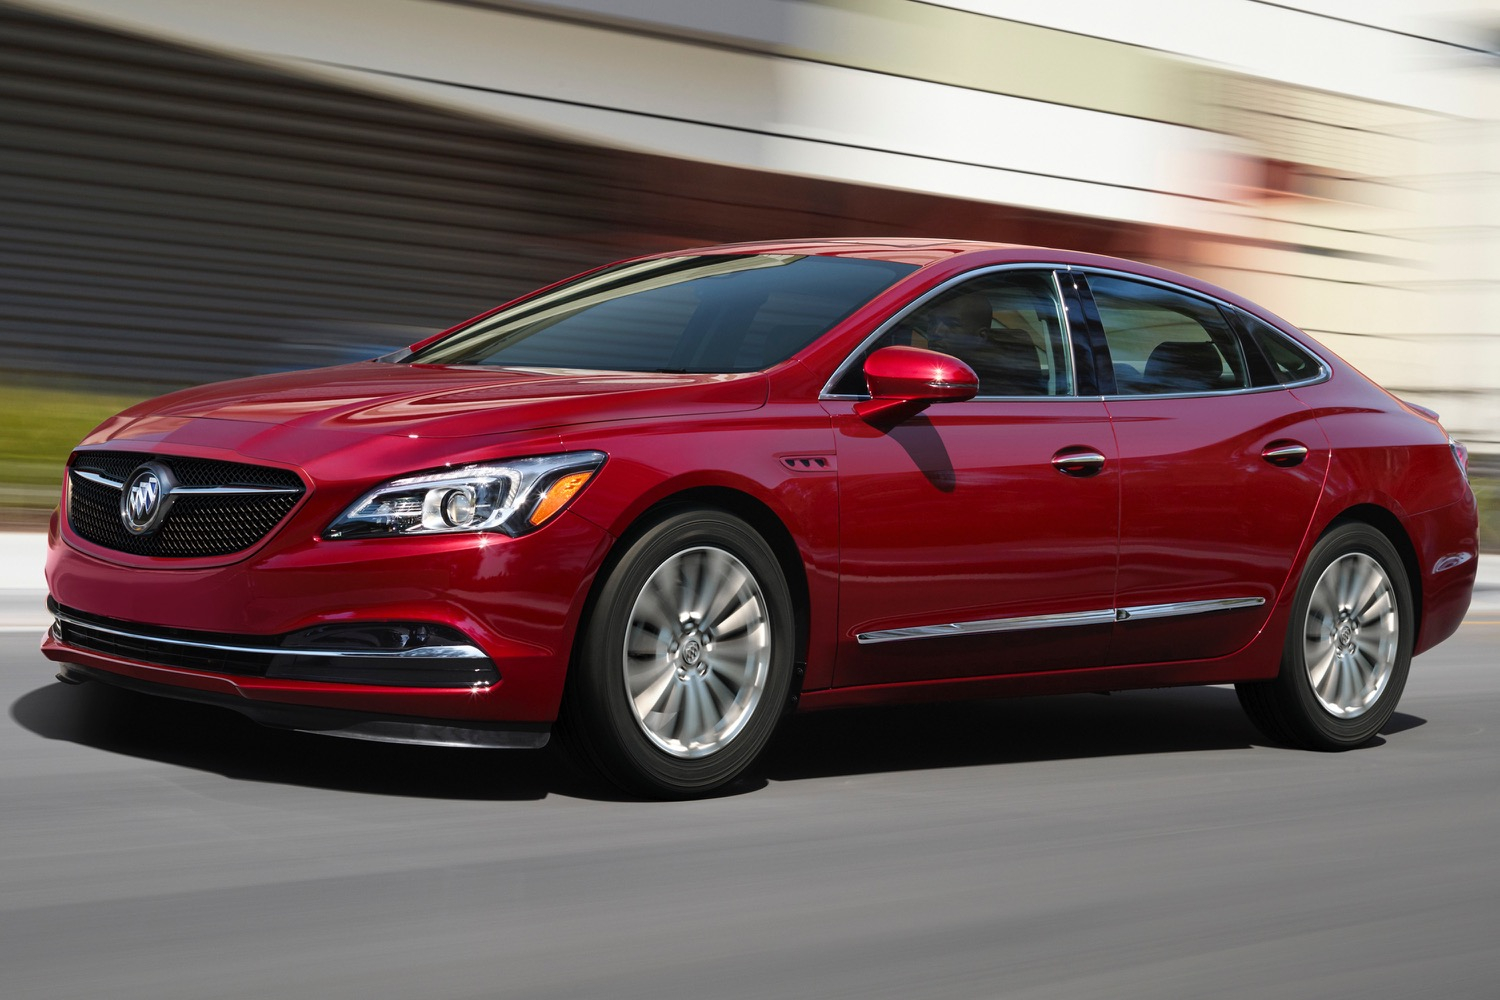 Buick Discount Cuts Lacrosse Price16% August 2019 | Gm 2022 Buick Lacrosse Lease, Reviews, Msrp